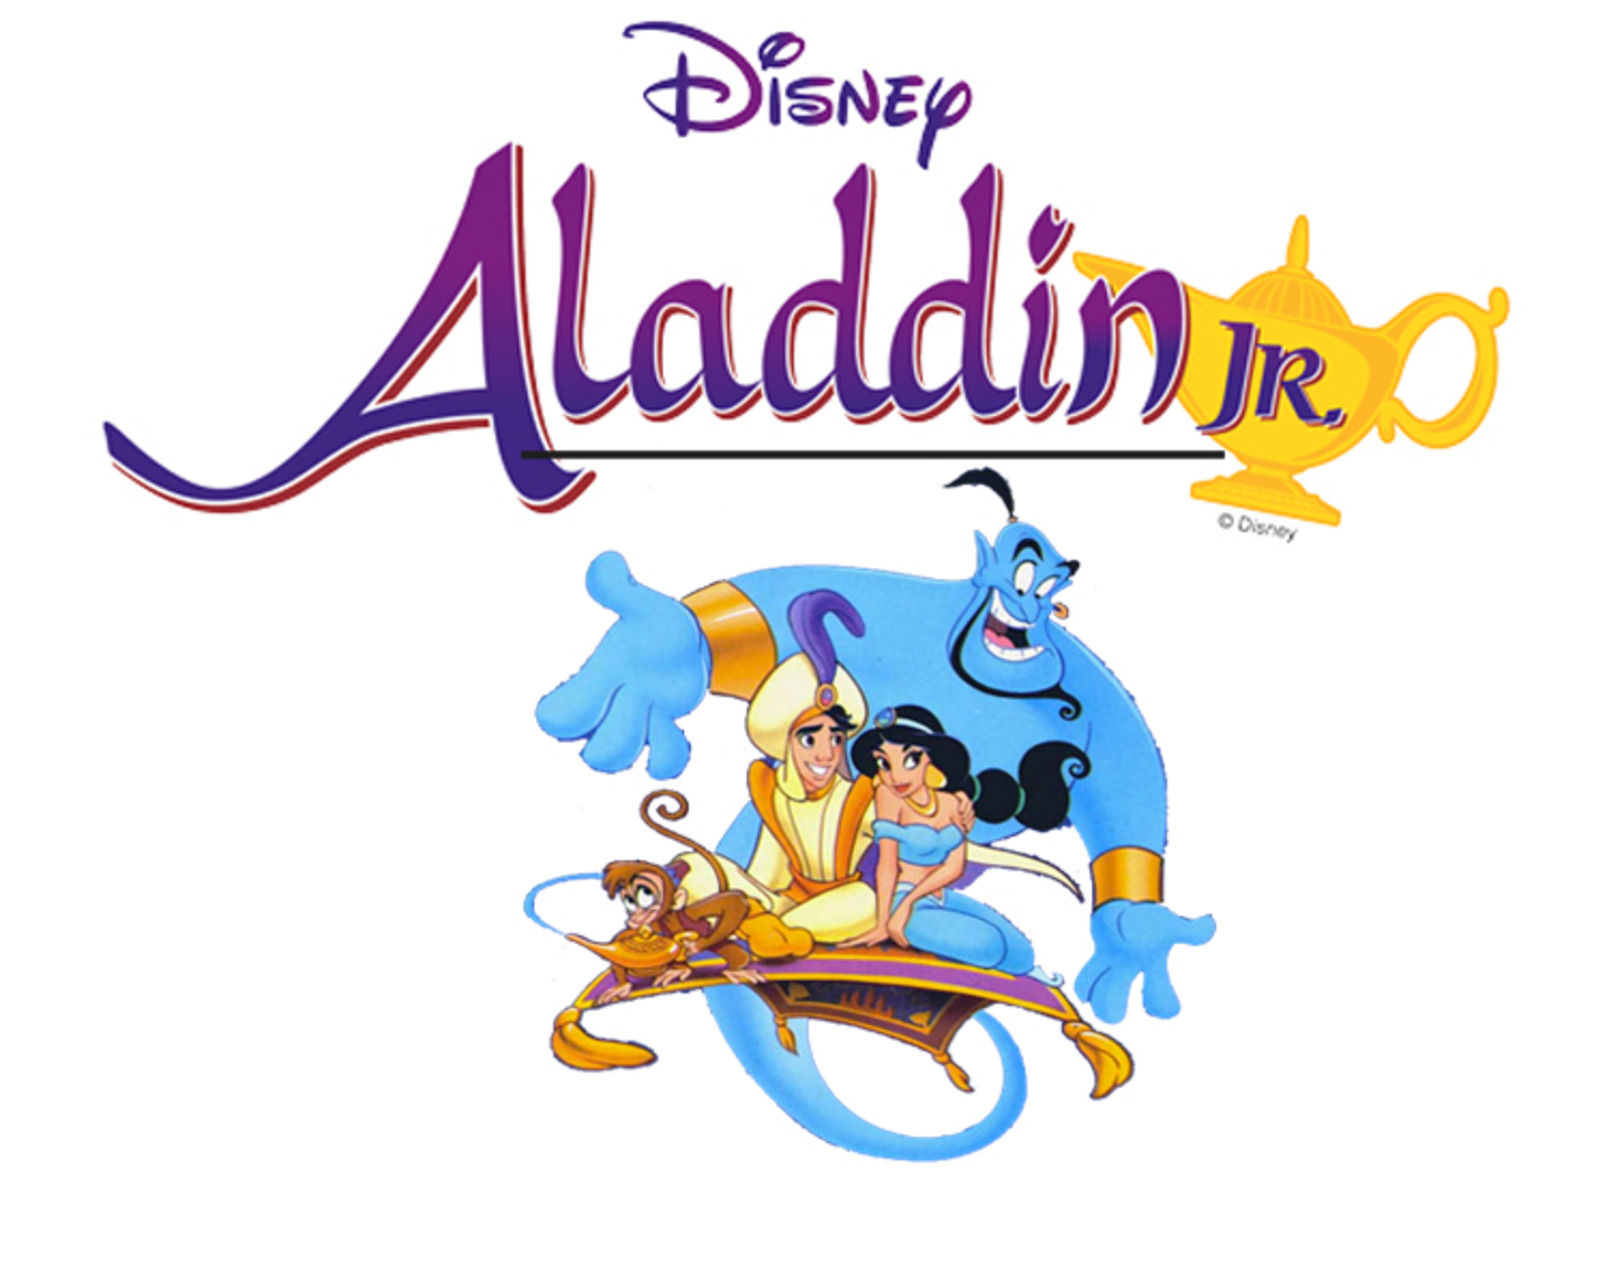 auditions for disney s aladdin jr set for aug 9 10 features rh herald dispatch com